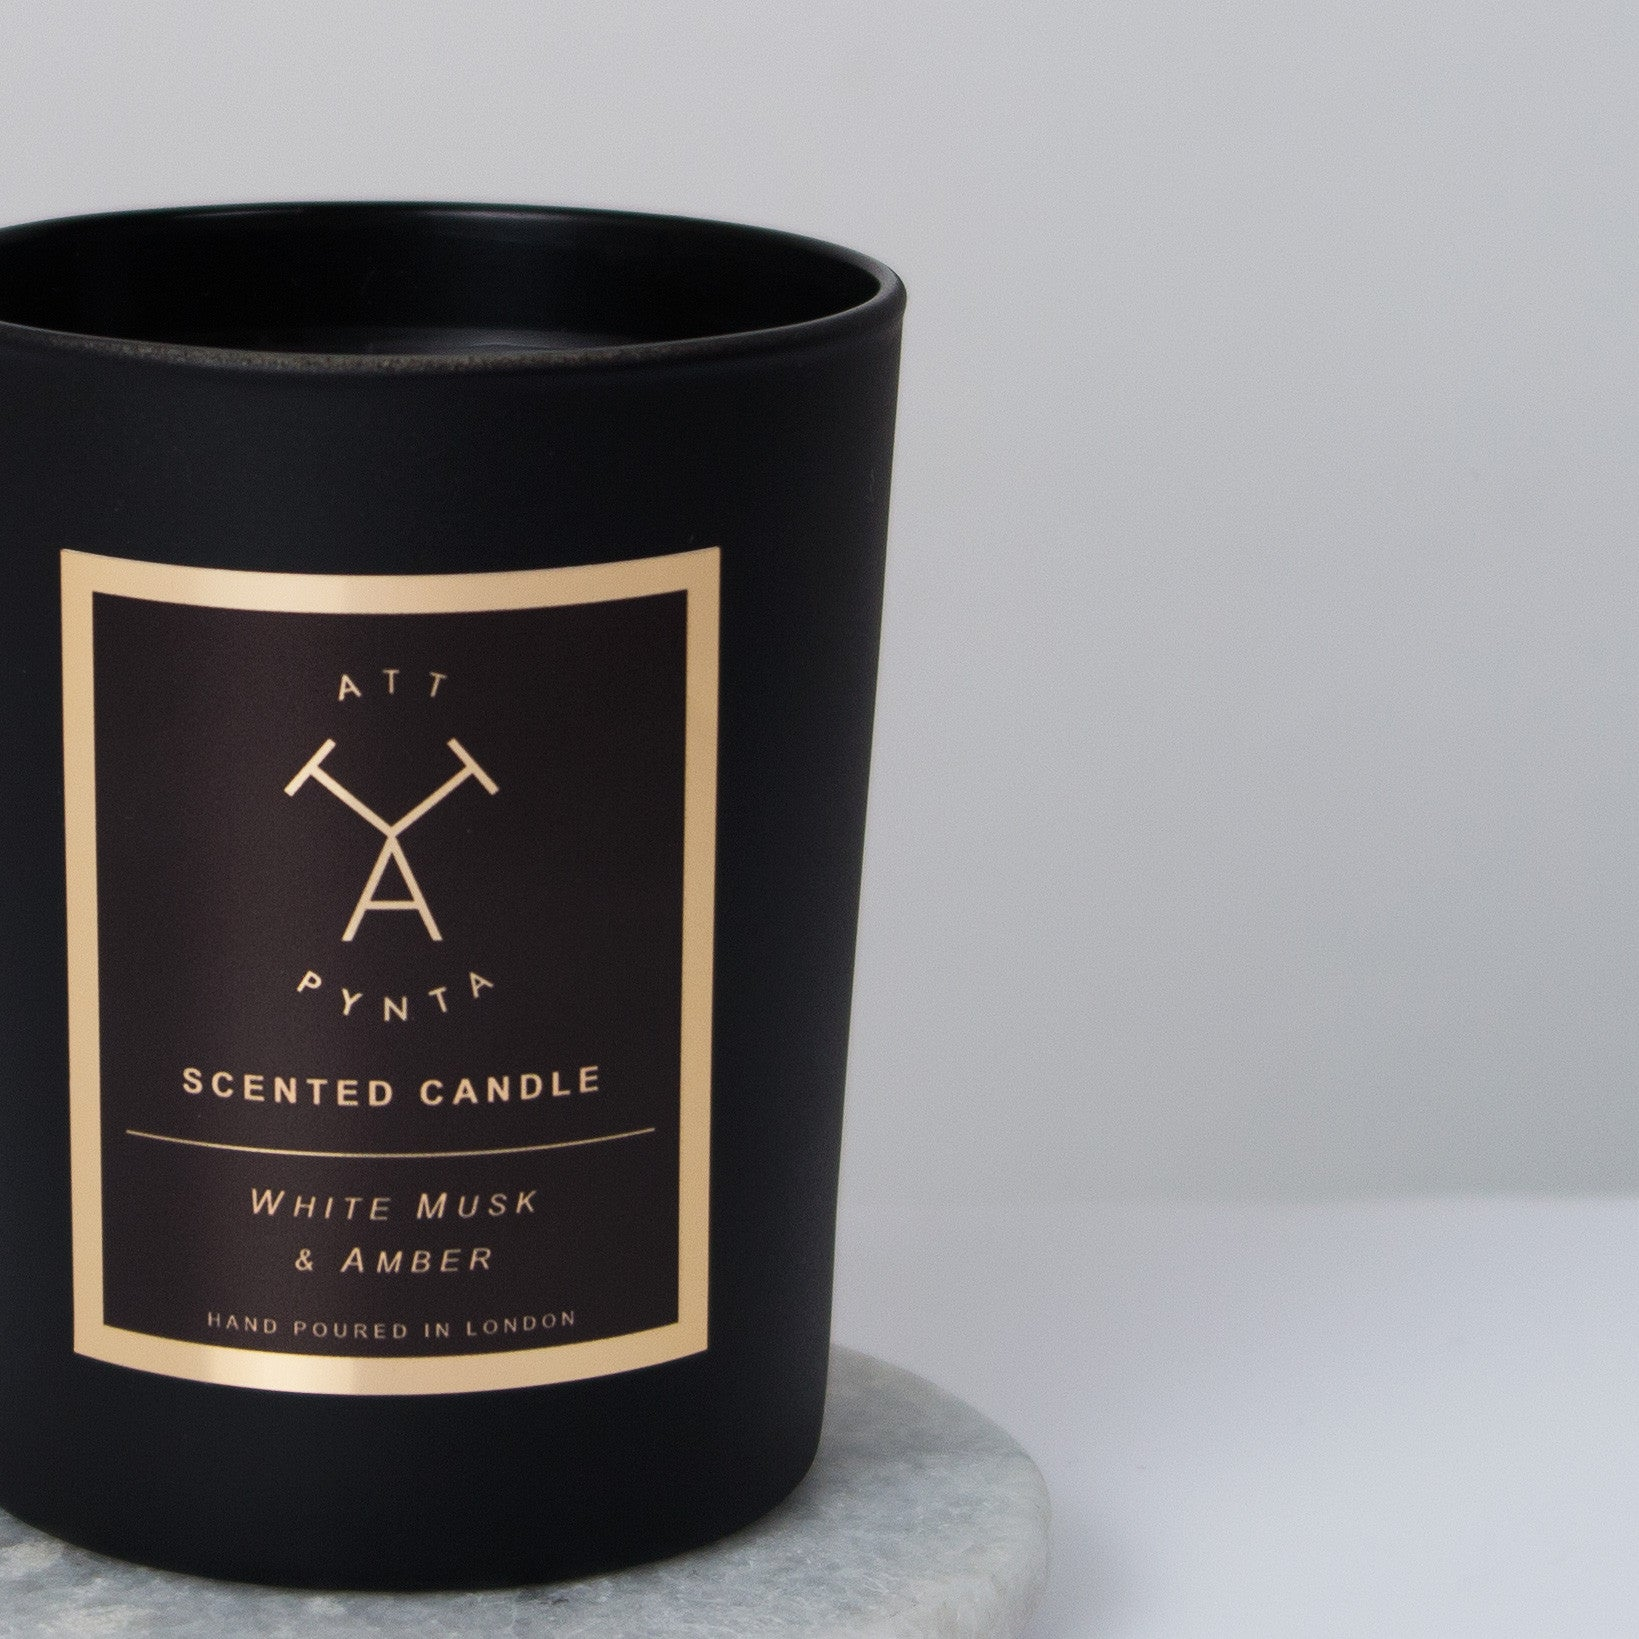 White musk & amber scented candle - Att Pynta